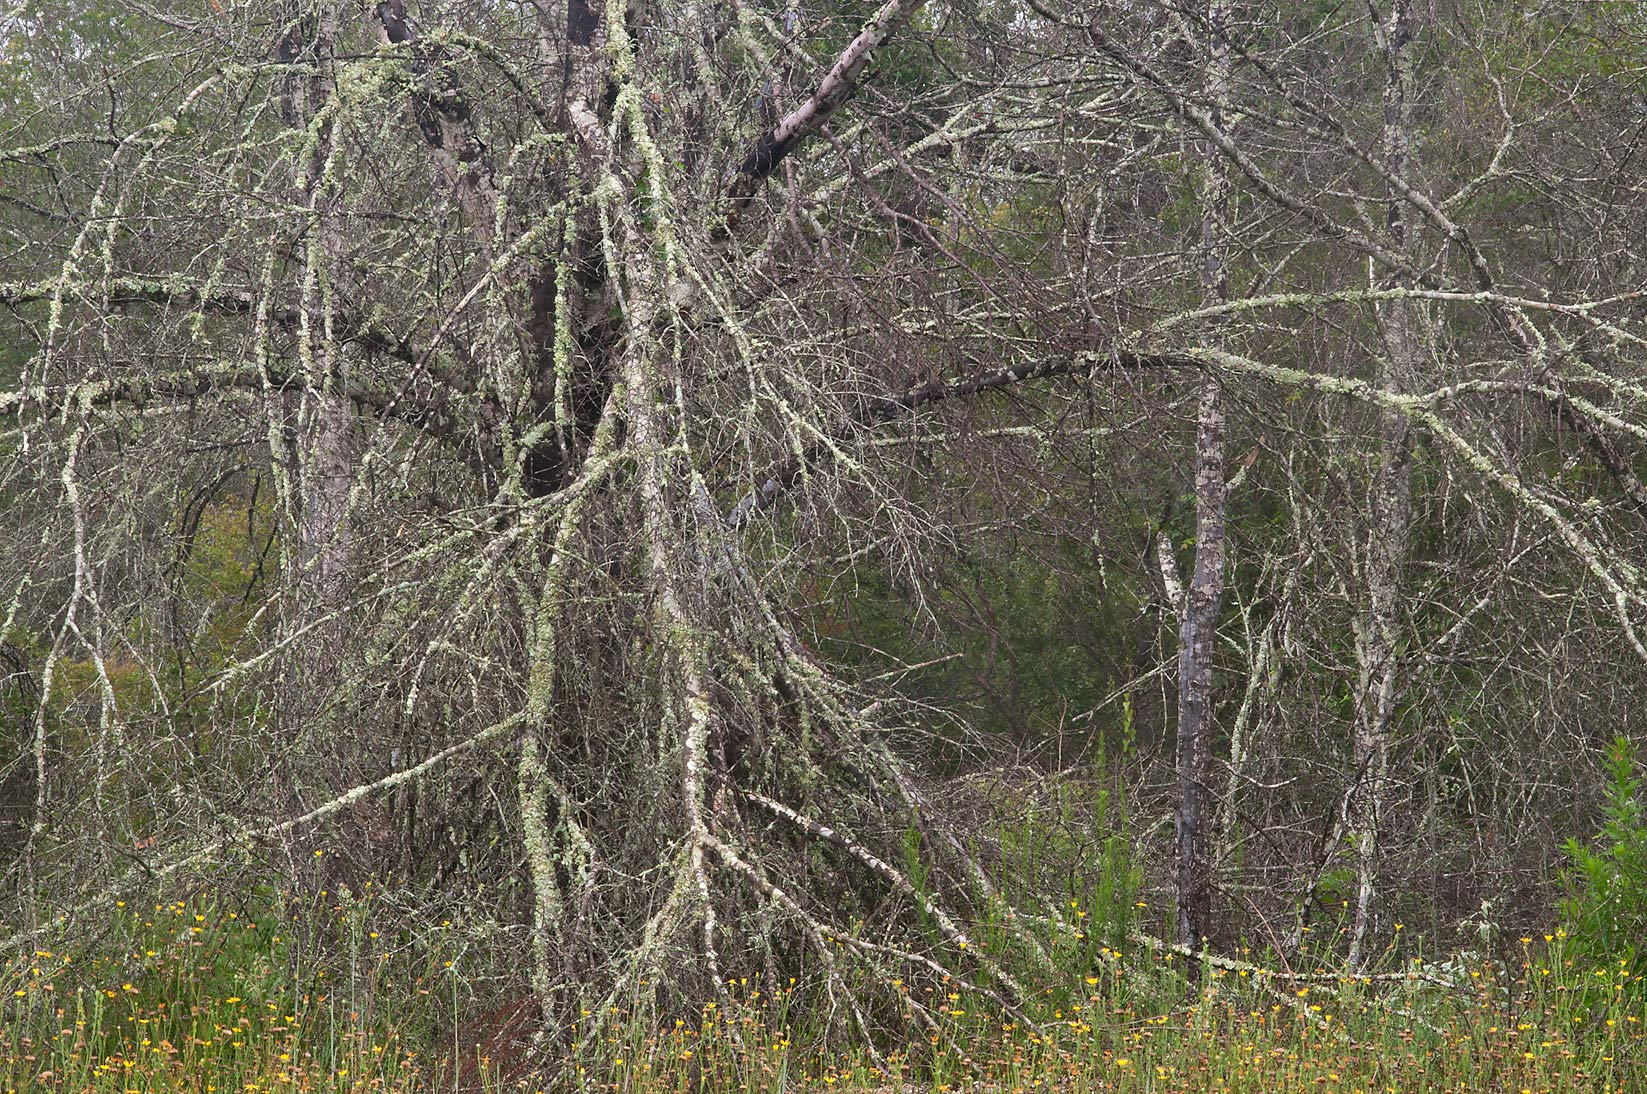 Dead oaks from last year drought in Lick Creek Park. College Station, Texas